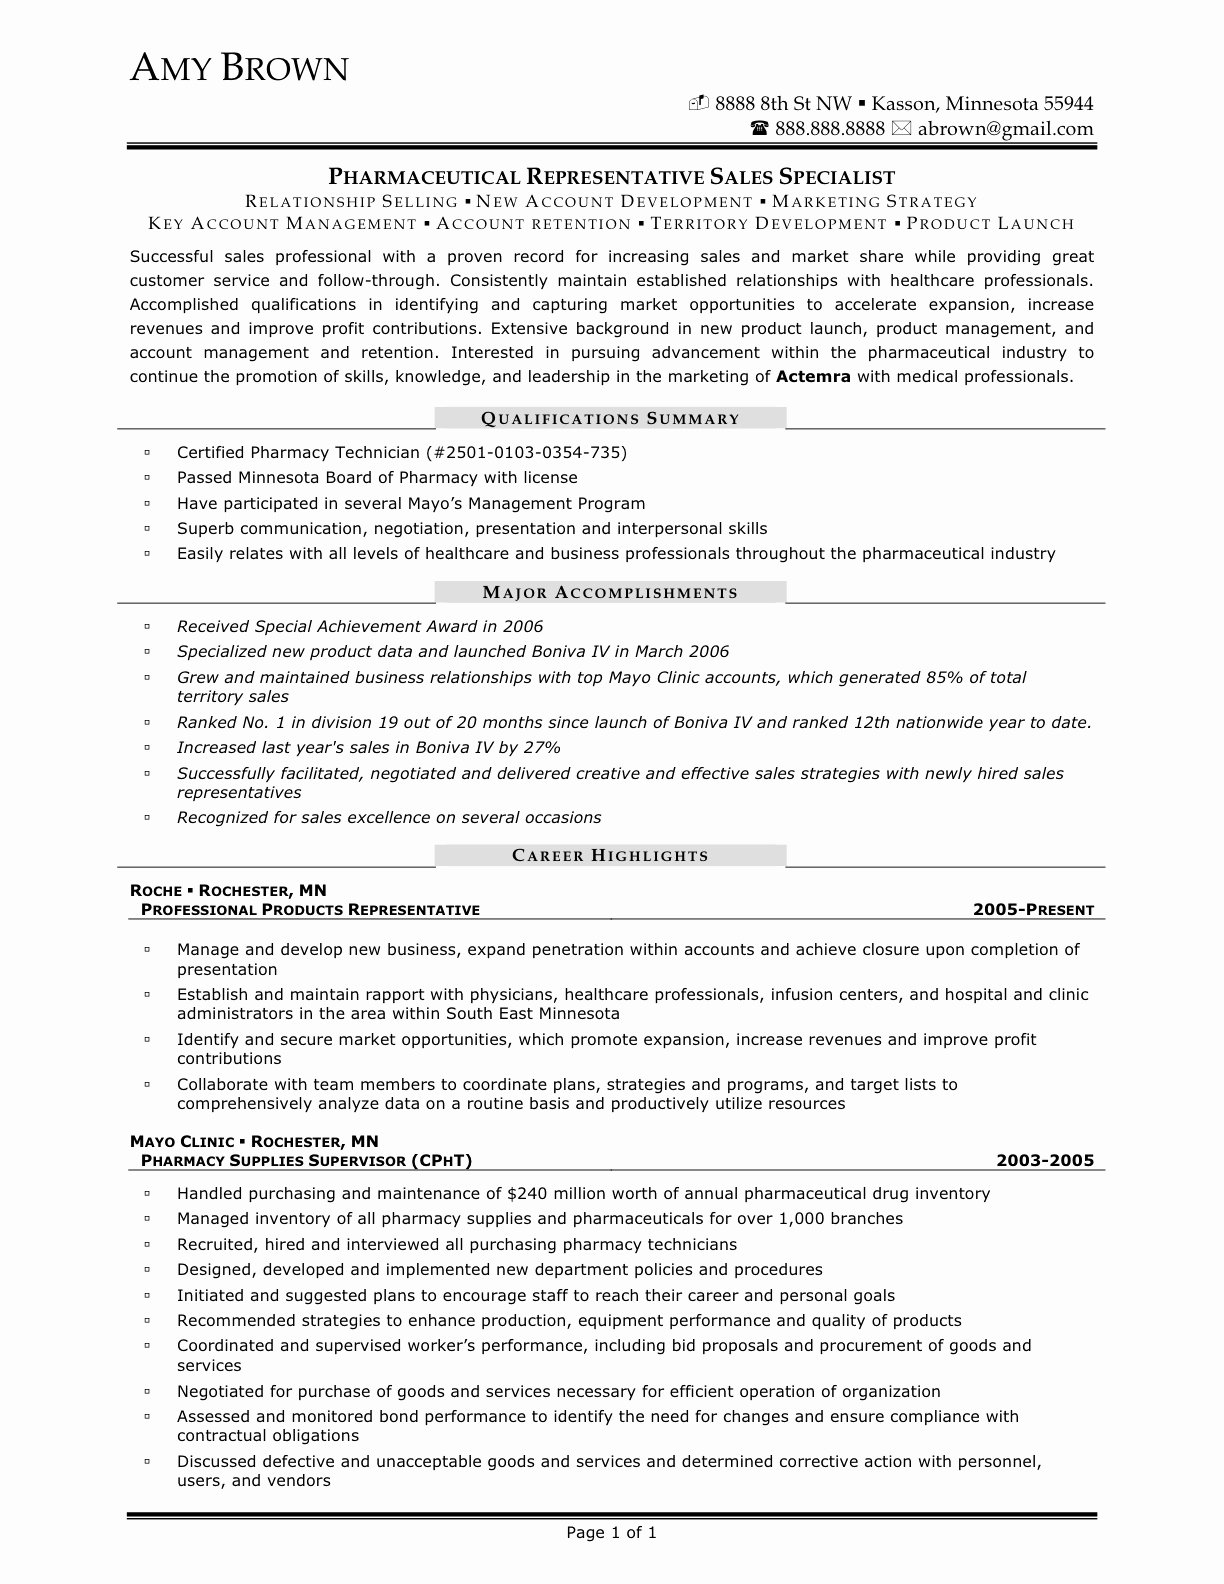 Insurance Sales Rep Resume Entry Level Objective